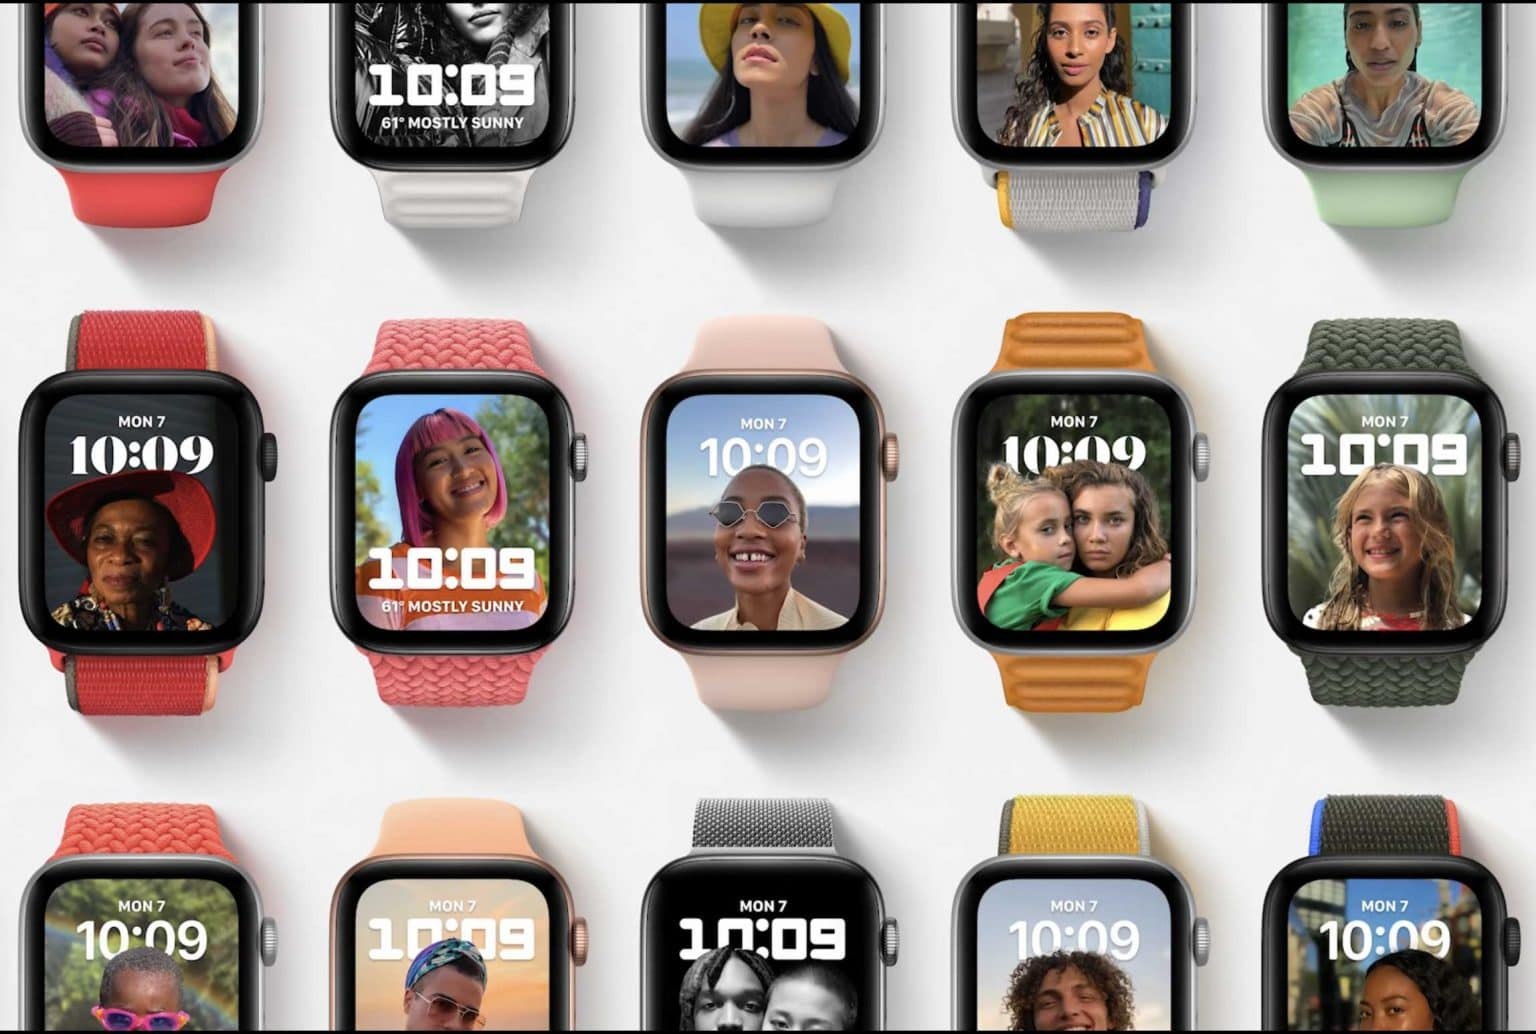 watchOS introduces a new Portrait mode watch face with depth effect